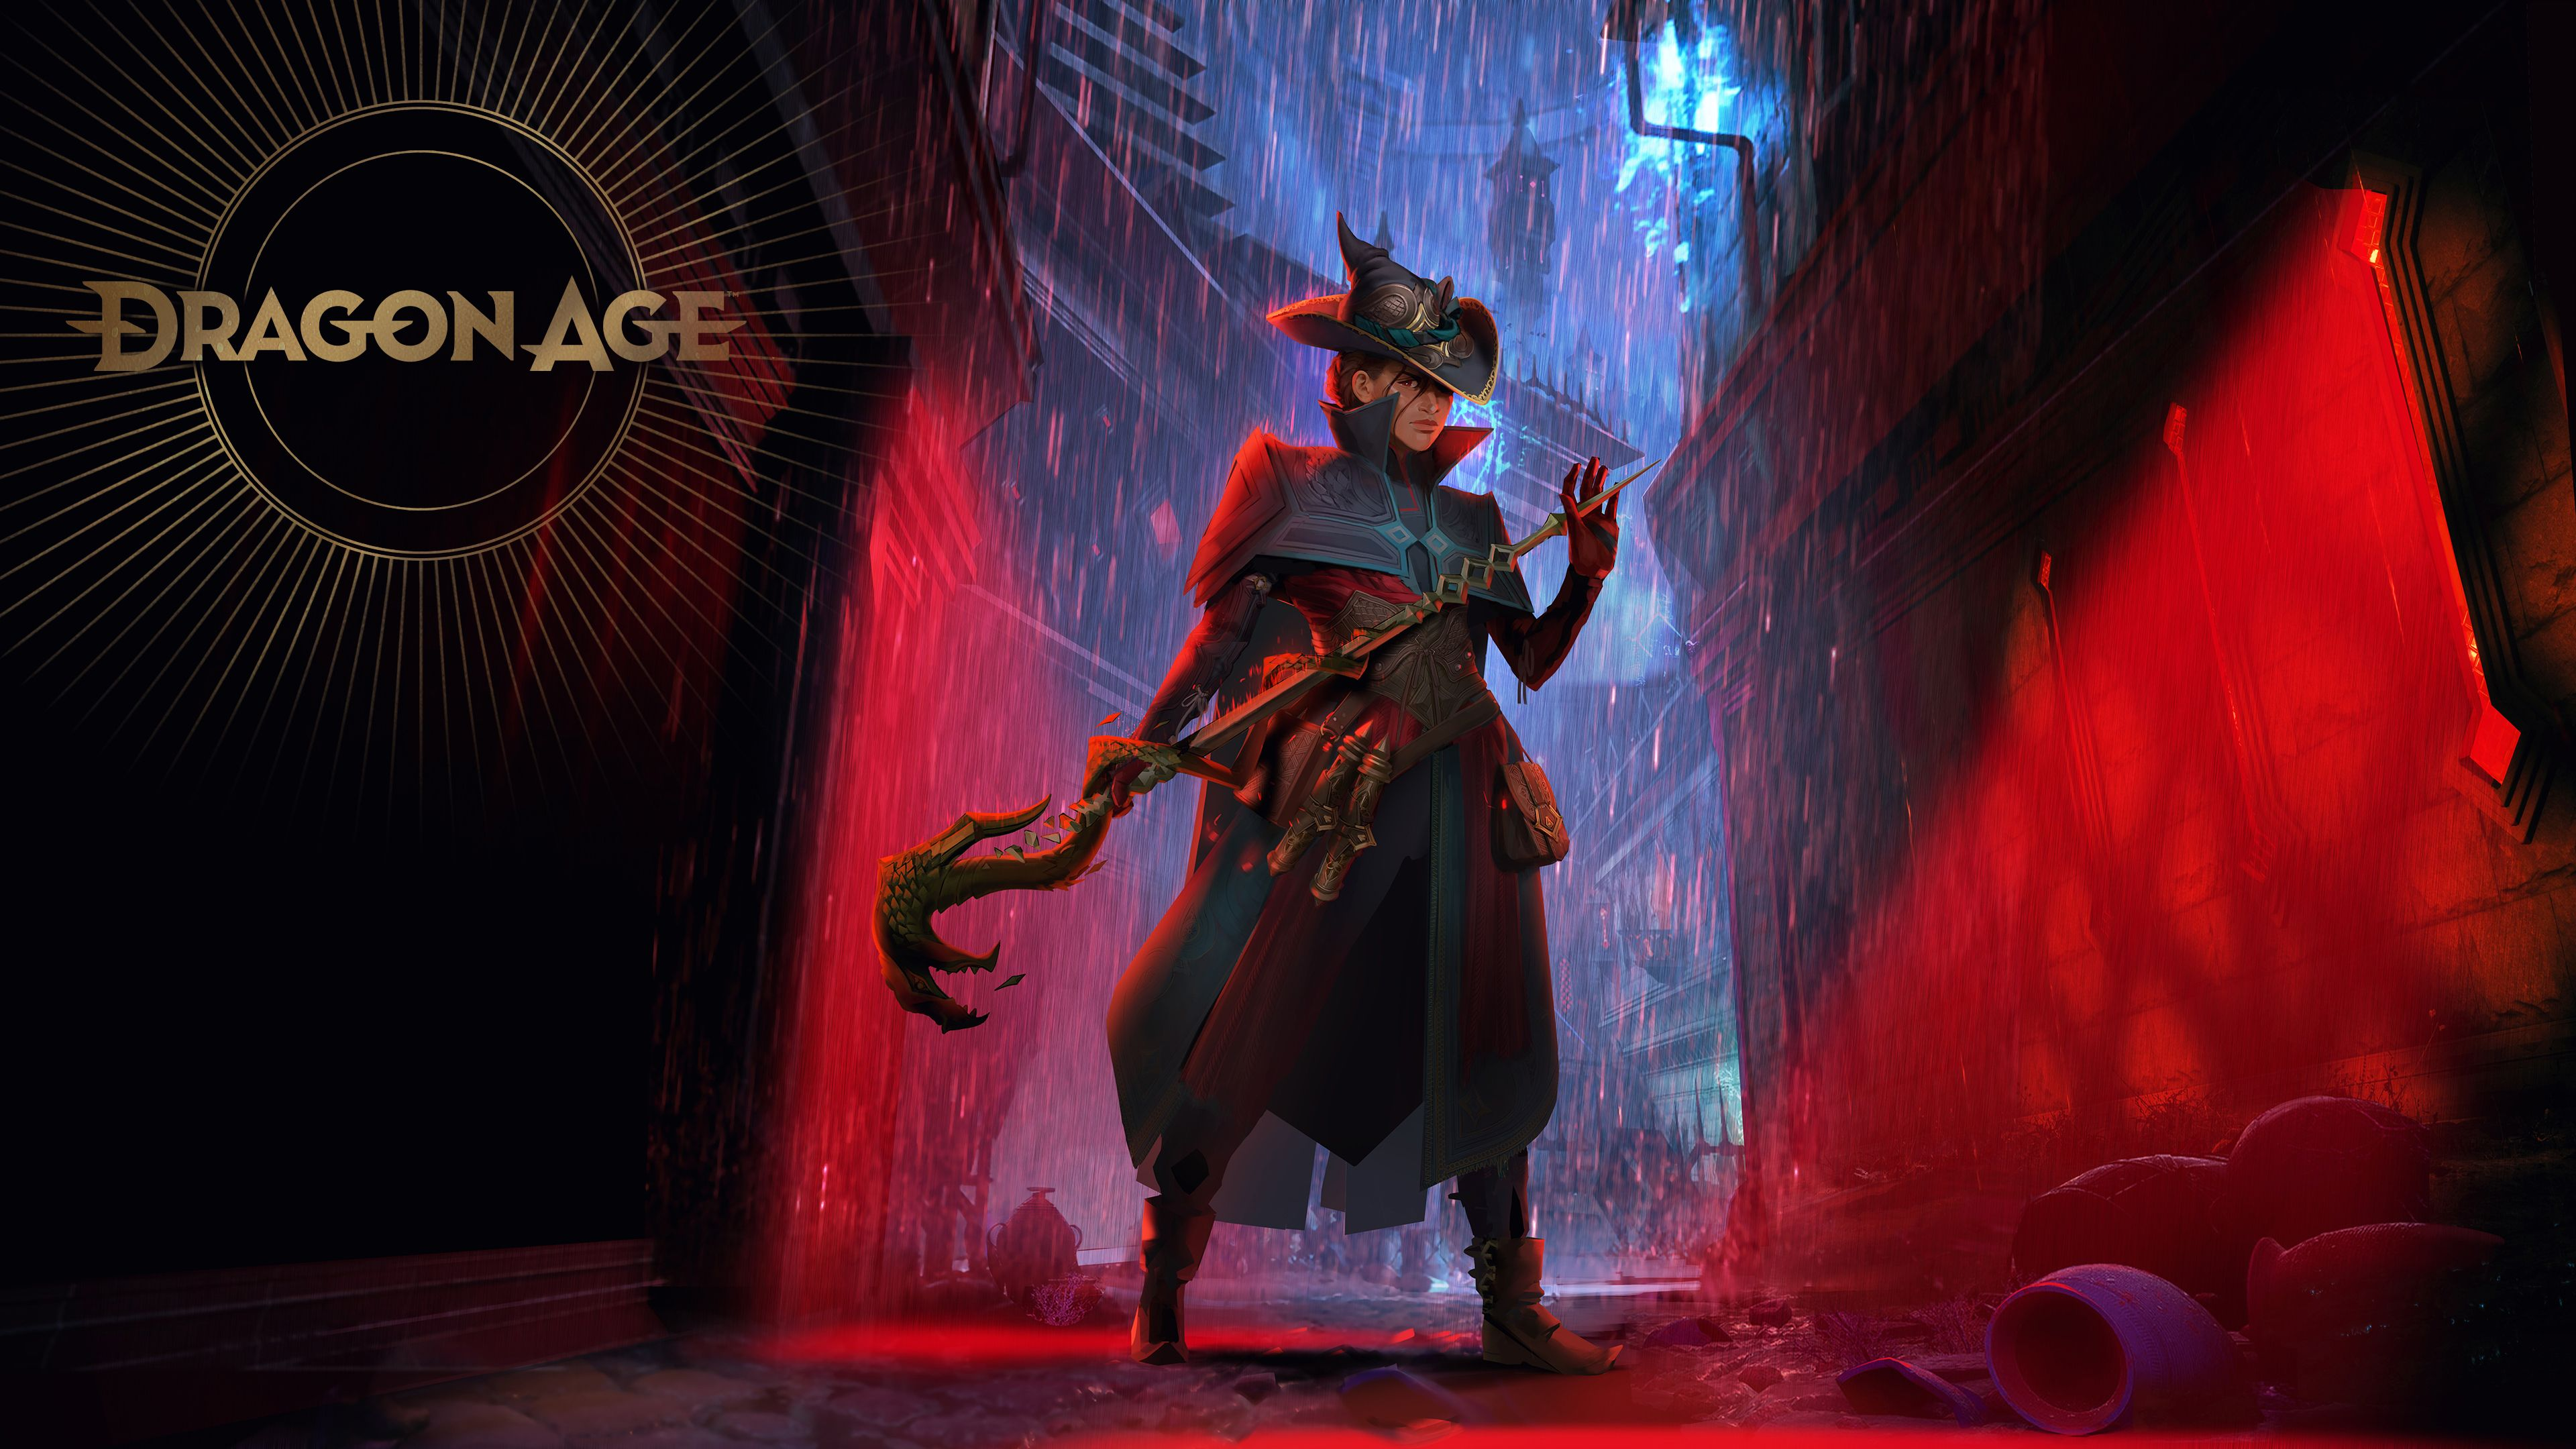 Concept art of a Dragon Age 4 mage lurking in an alley